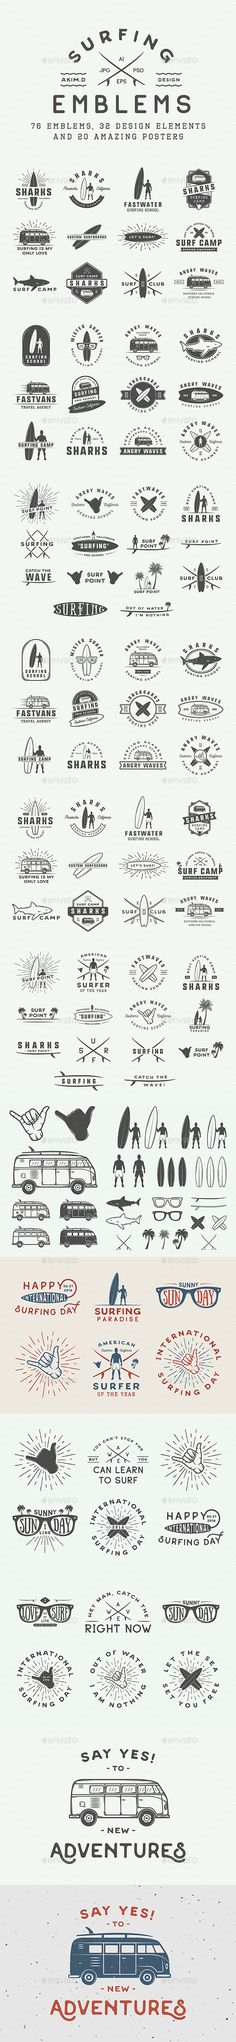 Vintage Surfing Emblems Templates PSD, Vector EPS, AI Illustrator